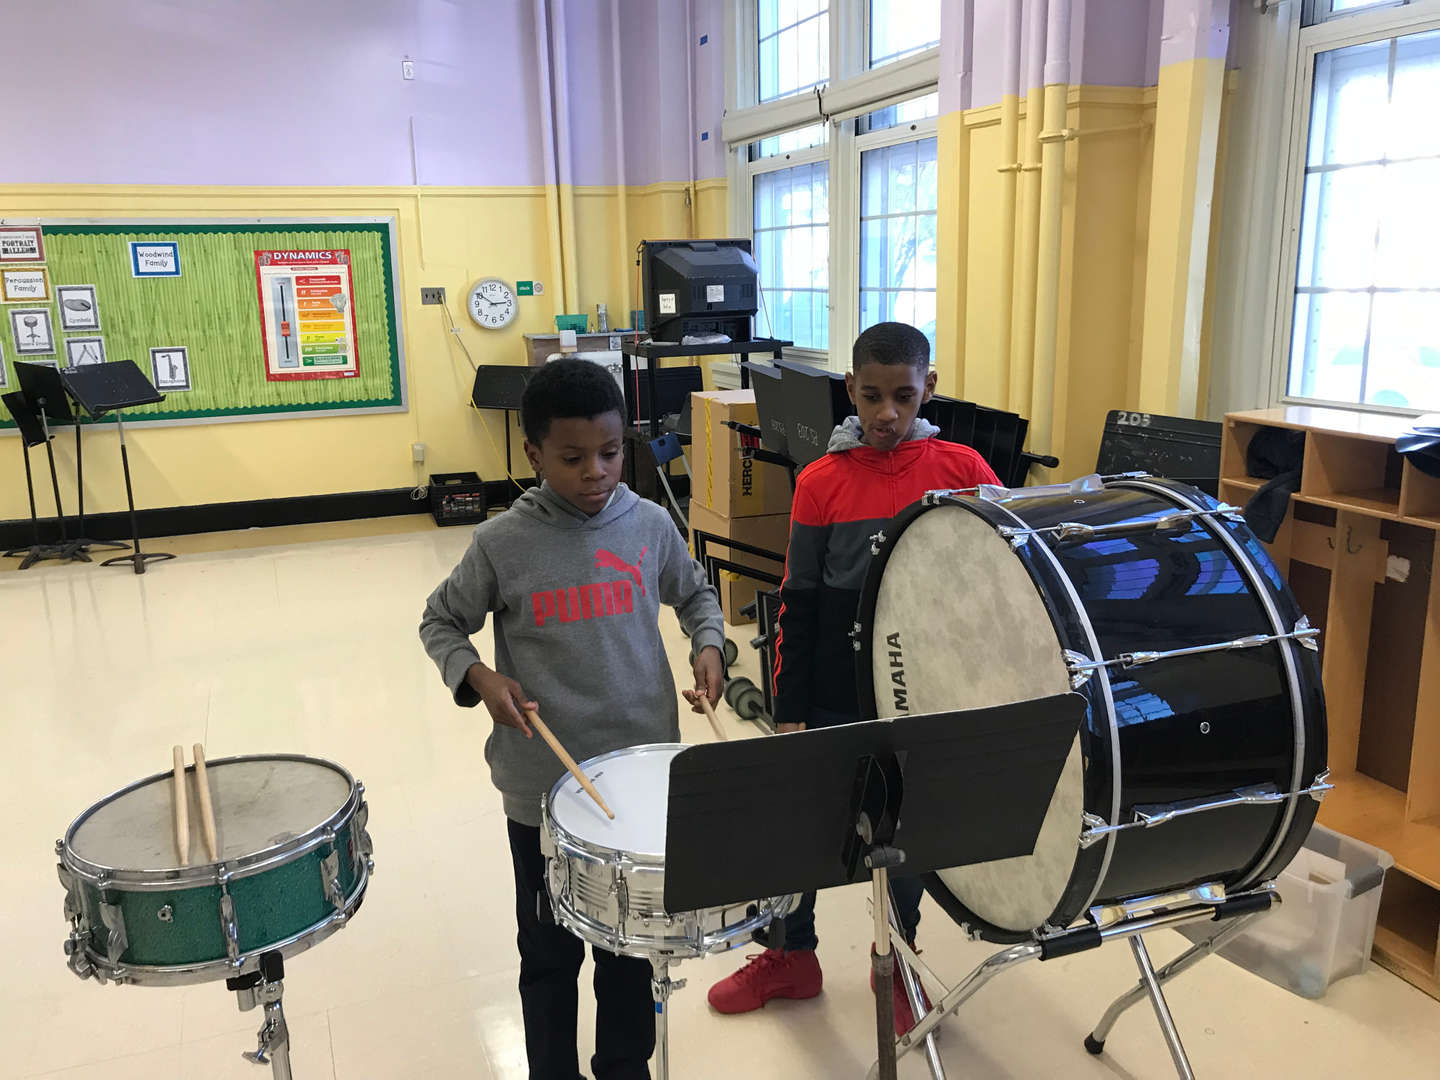 Band class at P.S. 203K